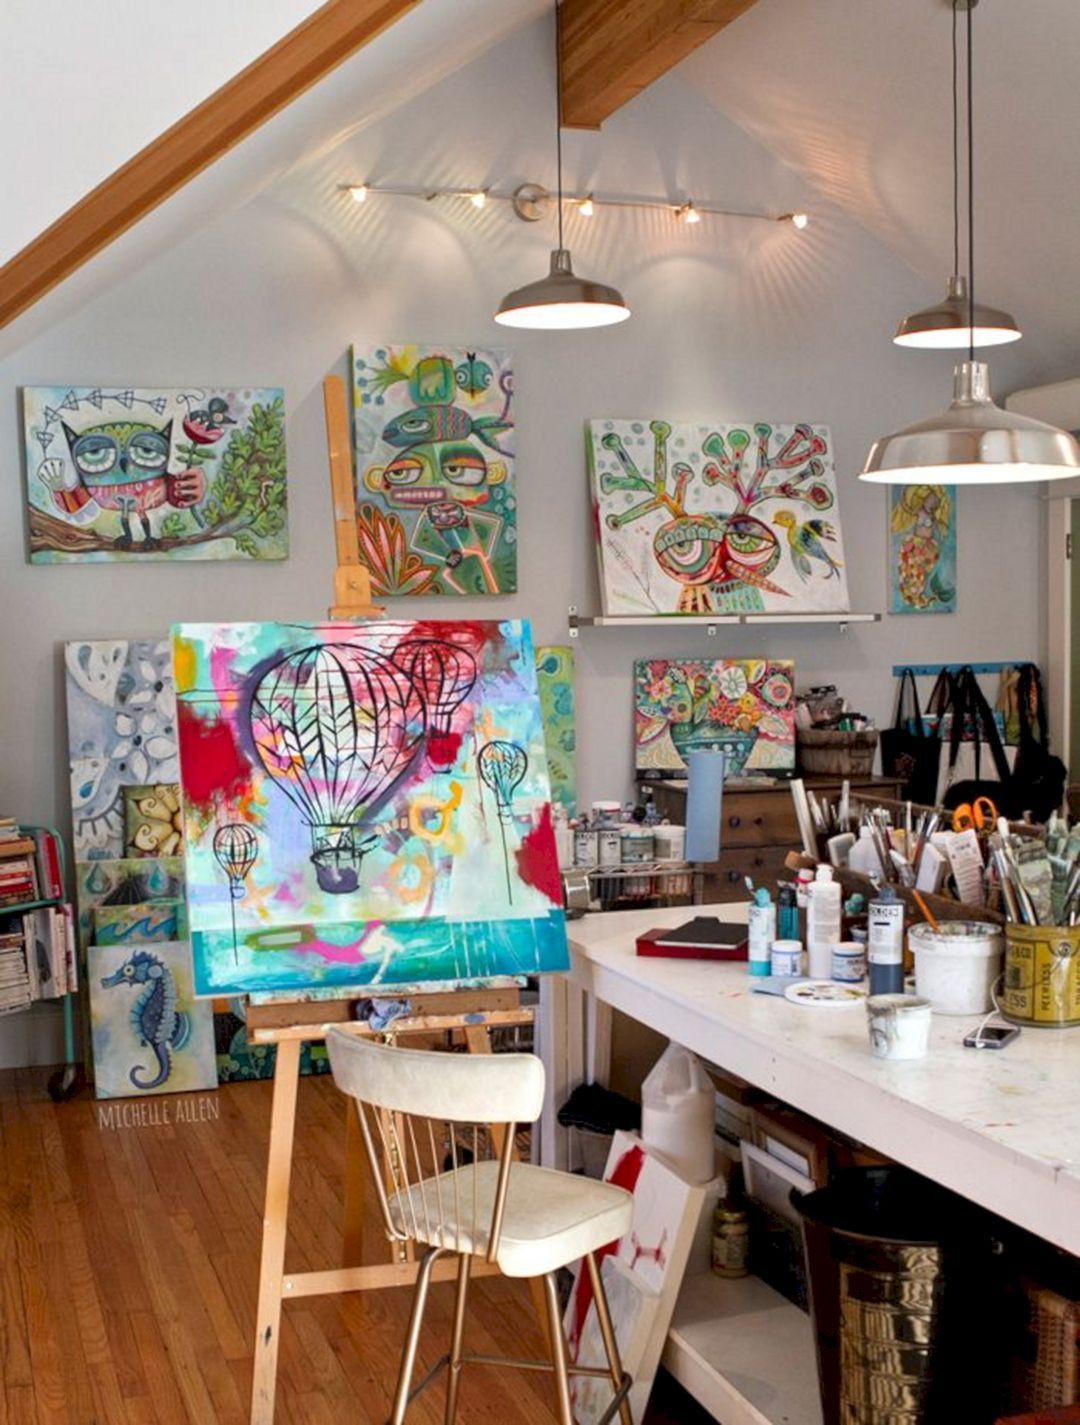 65+ Stunning Art Studio Design Ideas for Small Spaces ...